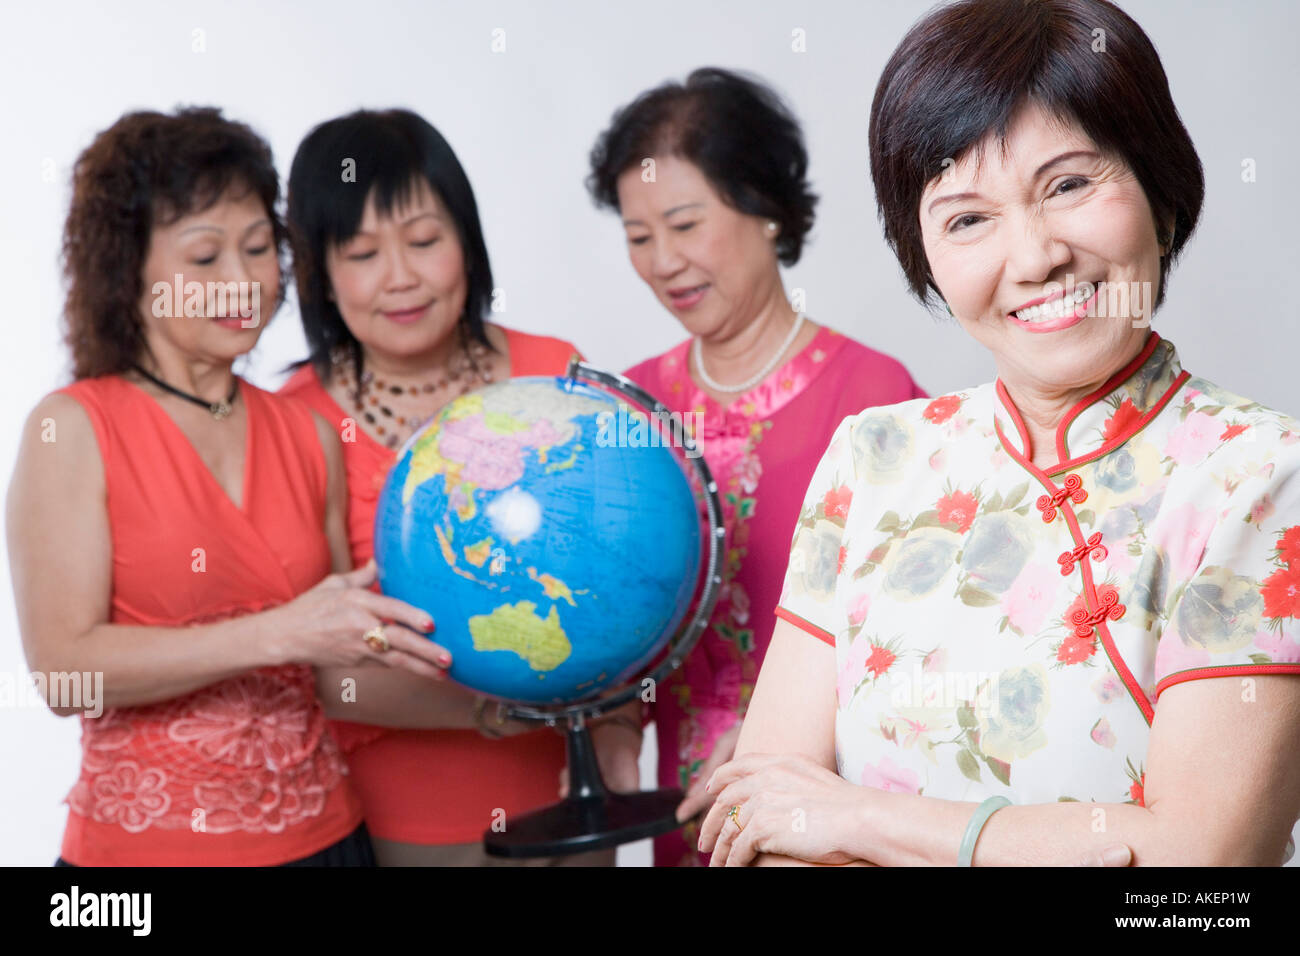 Portrait of a mature woman smiling with her friends looking at a globe - Stock Image